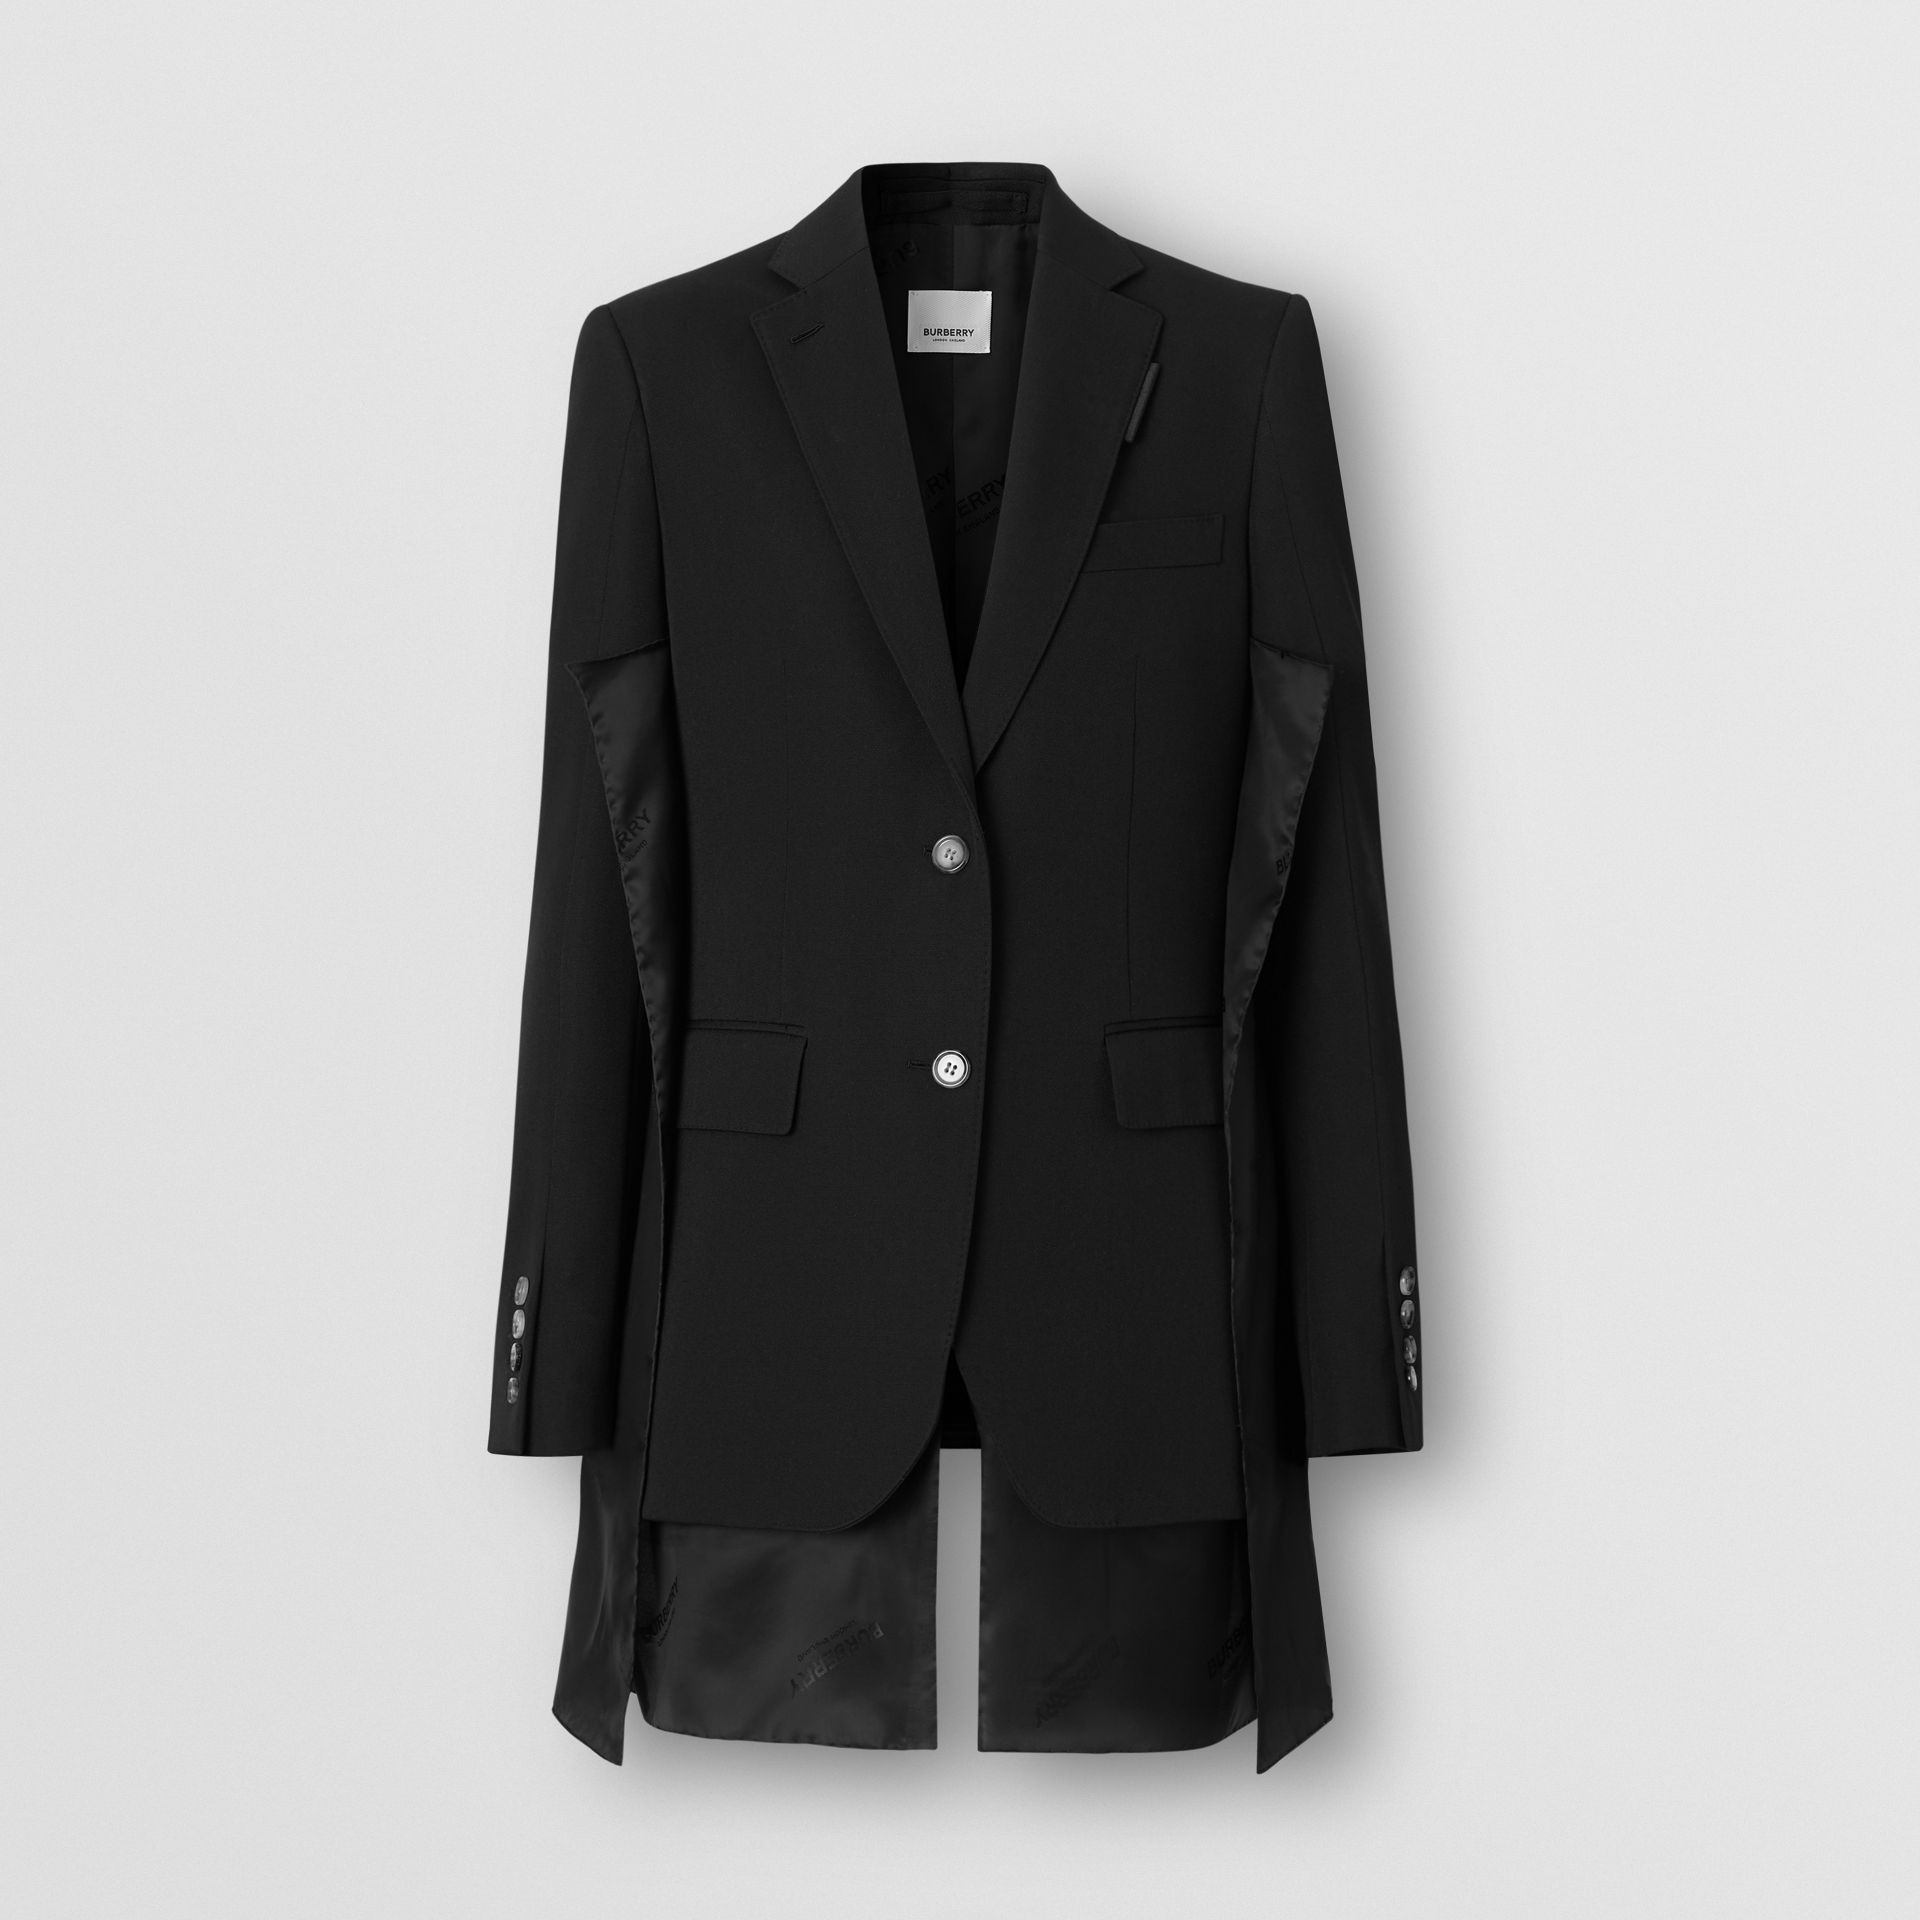 Logo Panel Detail Wool Tailored Jacket in Black - Women | Burberry - gallery image 3